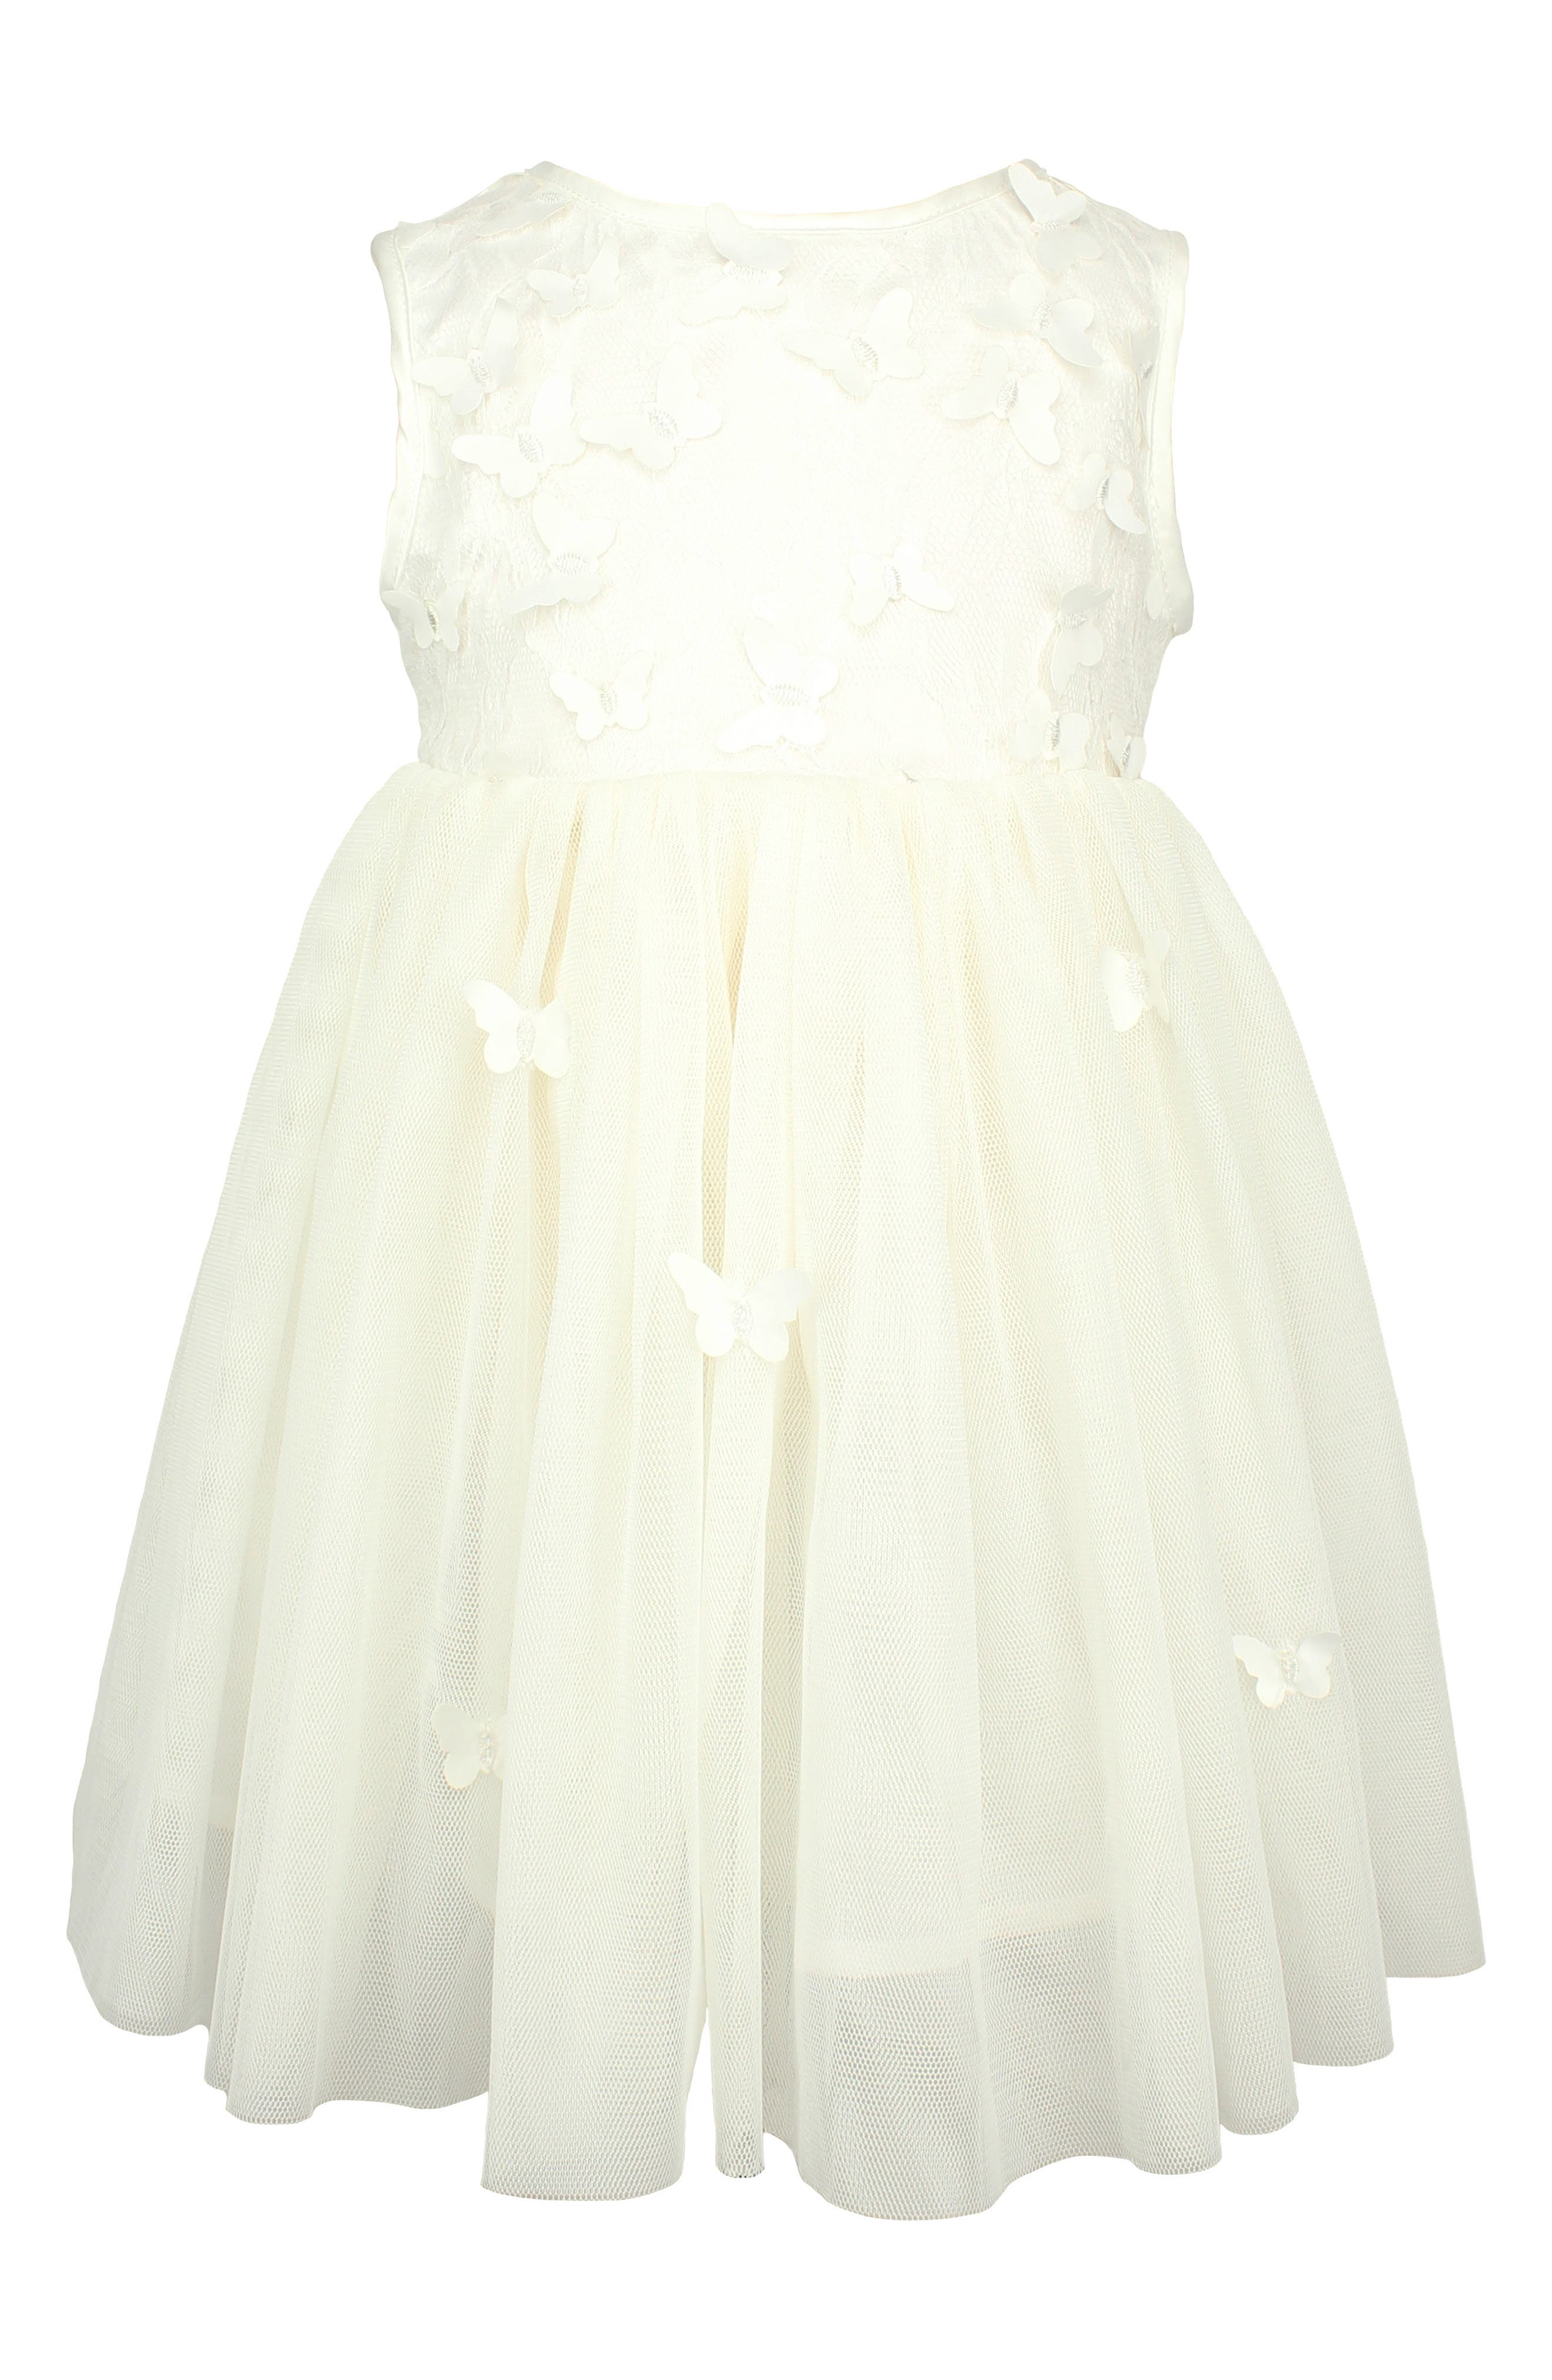 POPATU, Butterfly Tulle Dress, Main thumbnail 1, color, WHITE